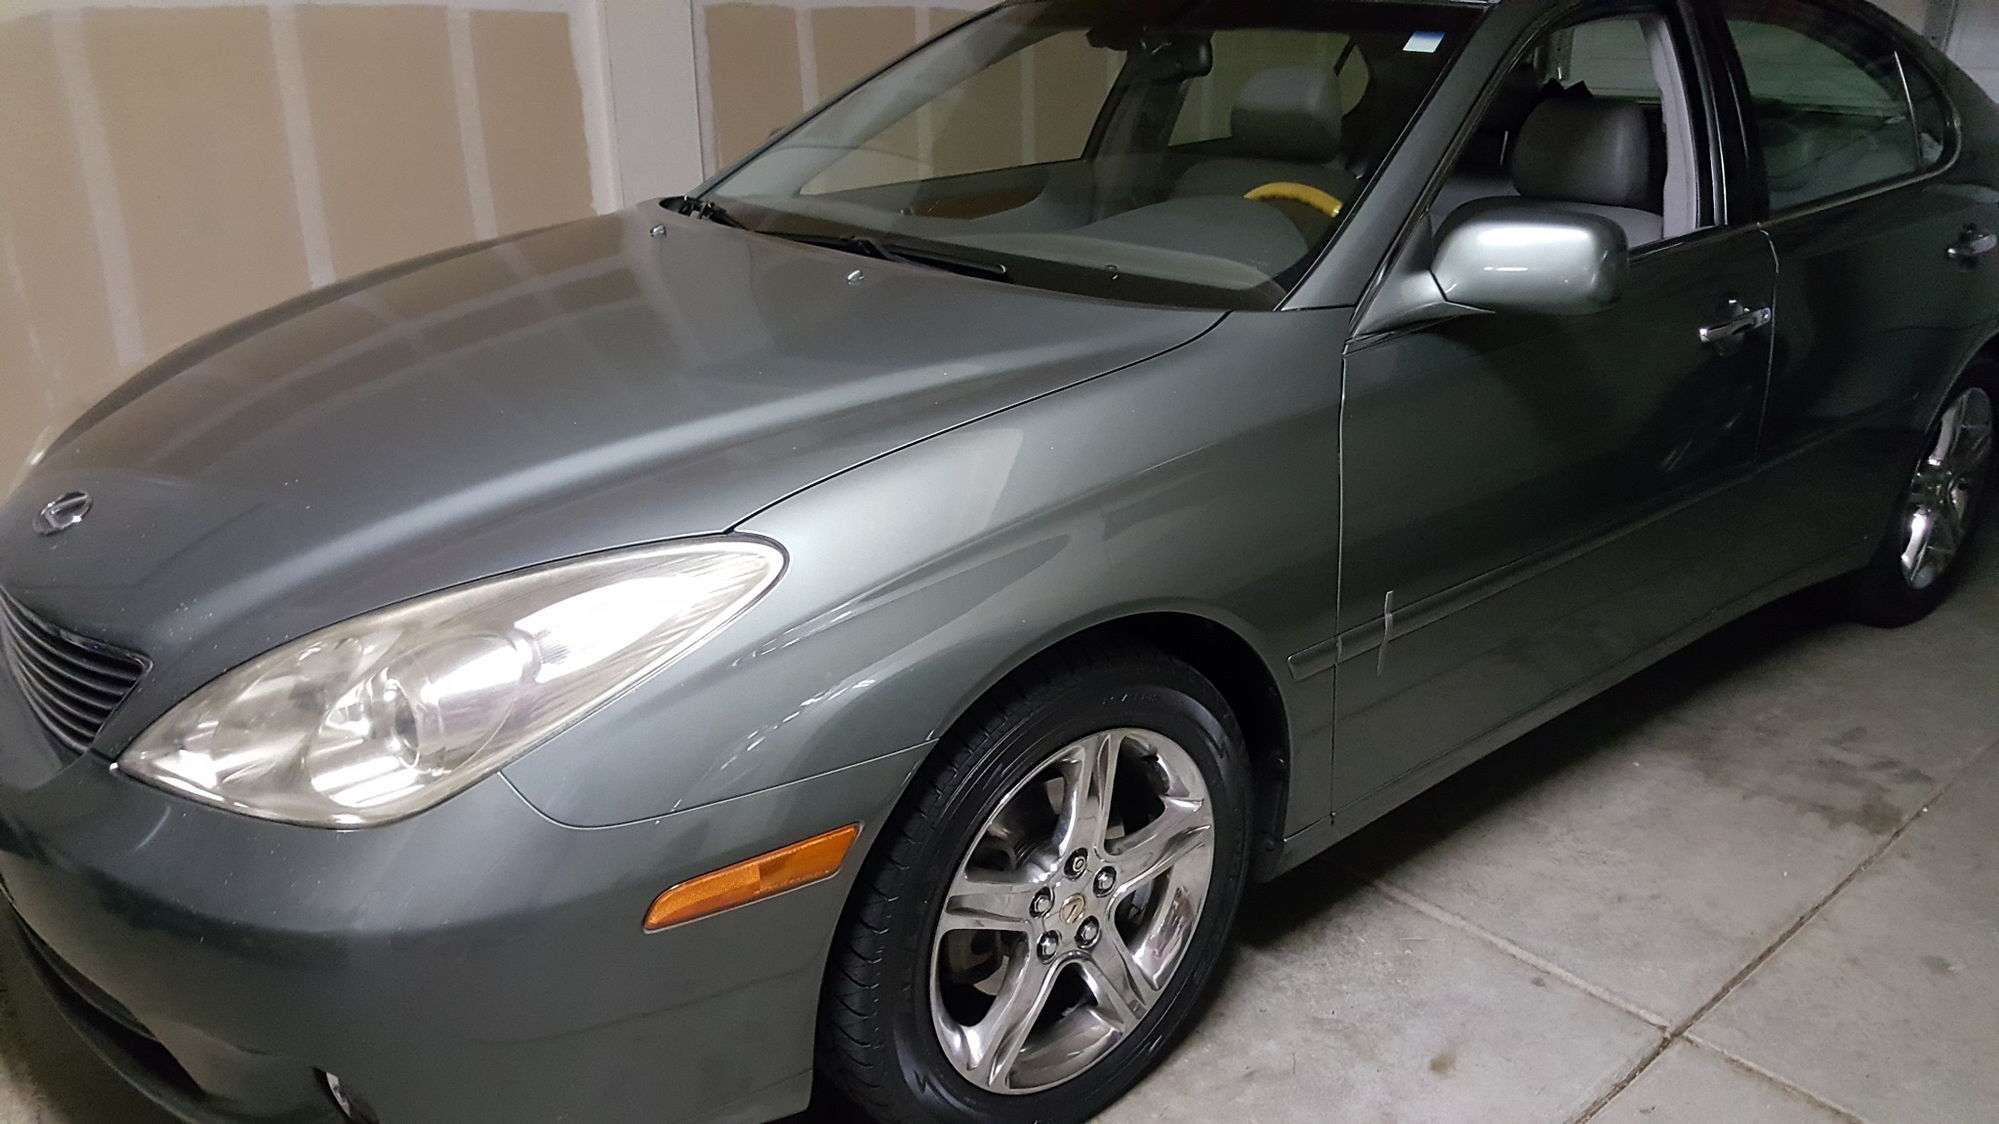 98 Lexus Es 300 Fuse Panel Diagram Manual Of Wiring 1998 Box Images Gallery Rx Clublexus Forum Discussion Ls Won T